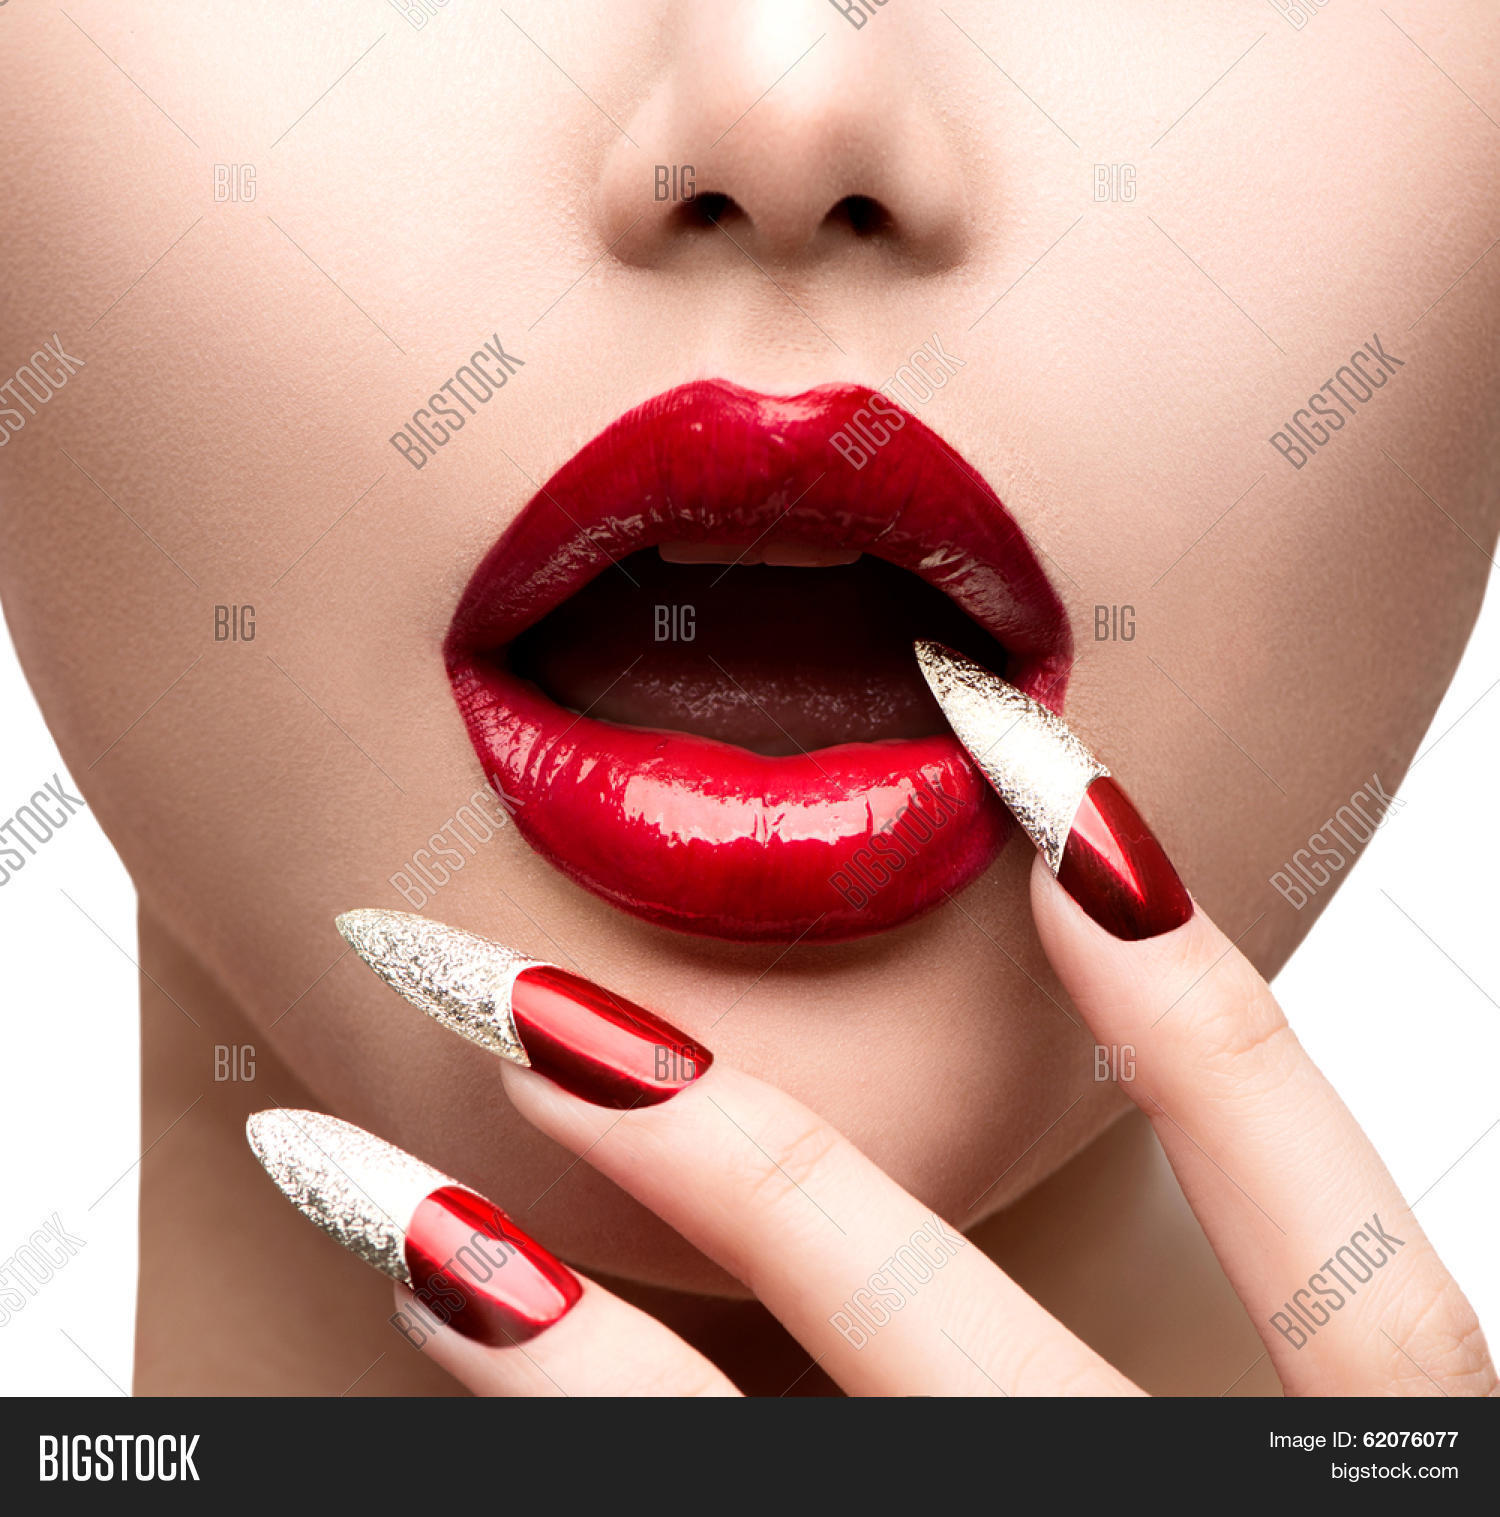 Fashion Model Girl Image & Photo (Free Trial) | Bigstock